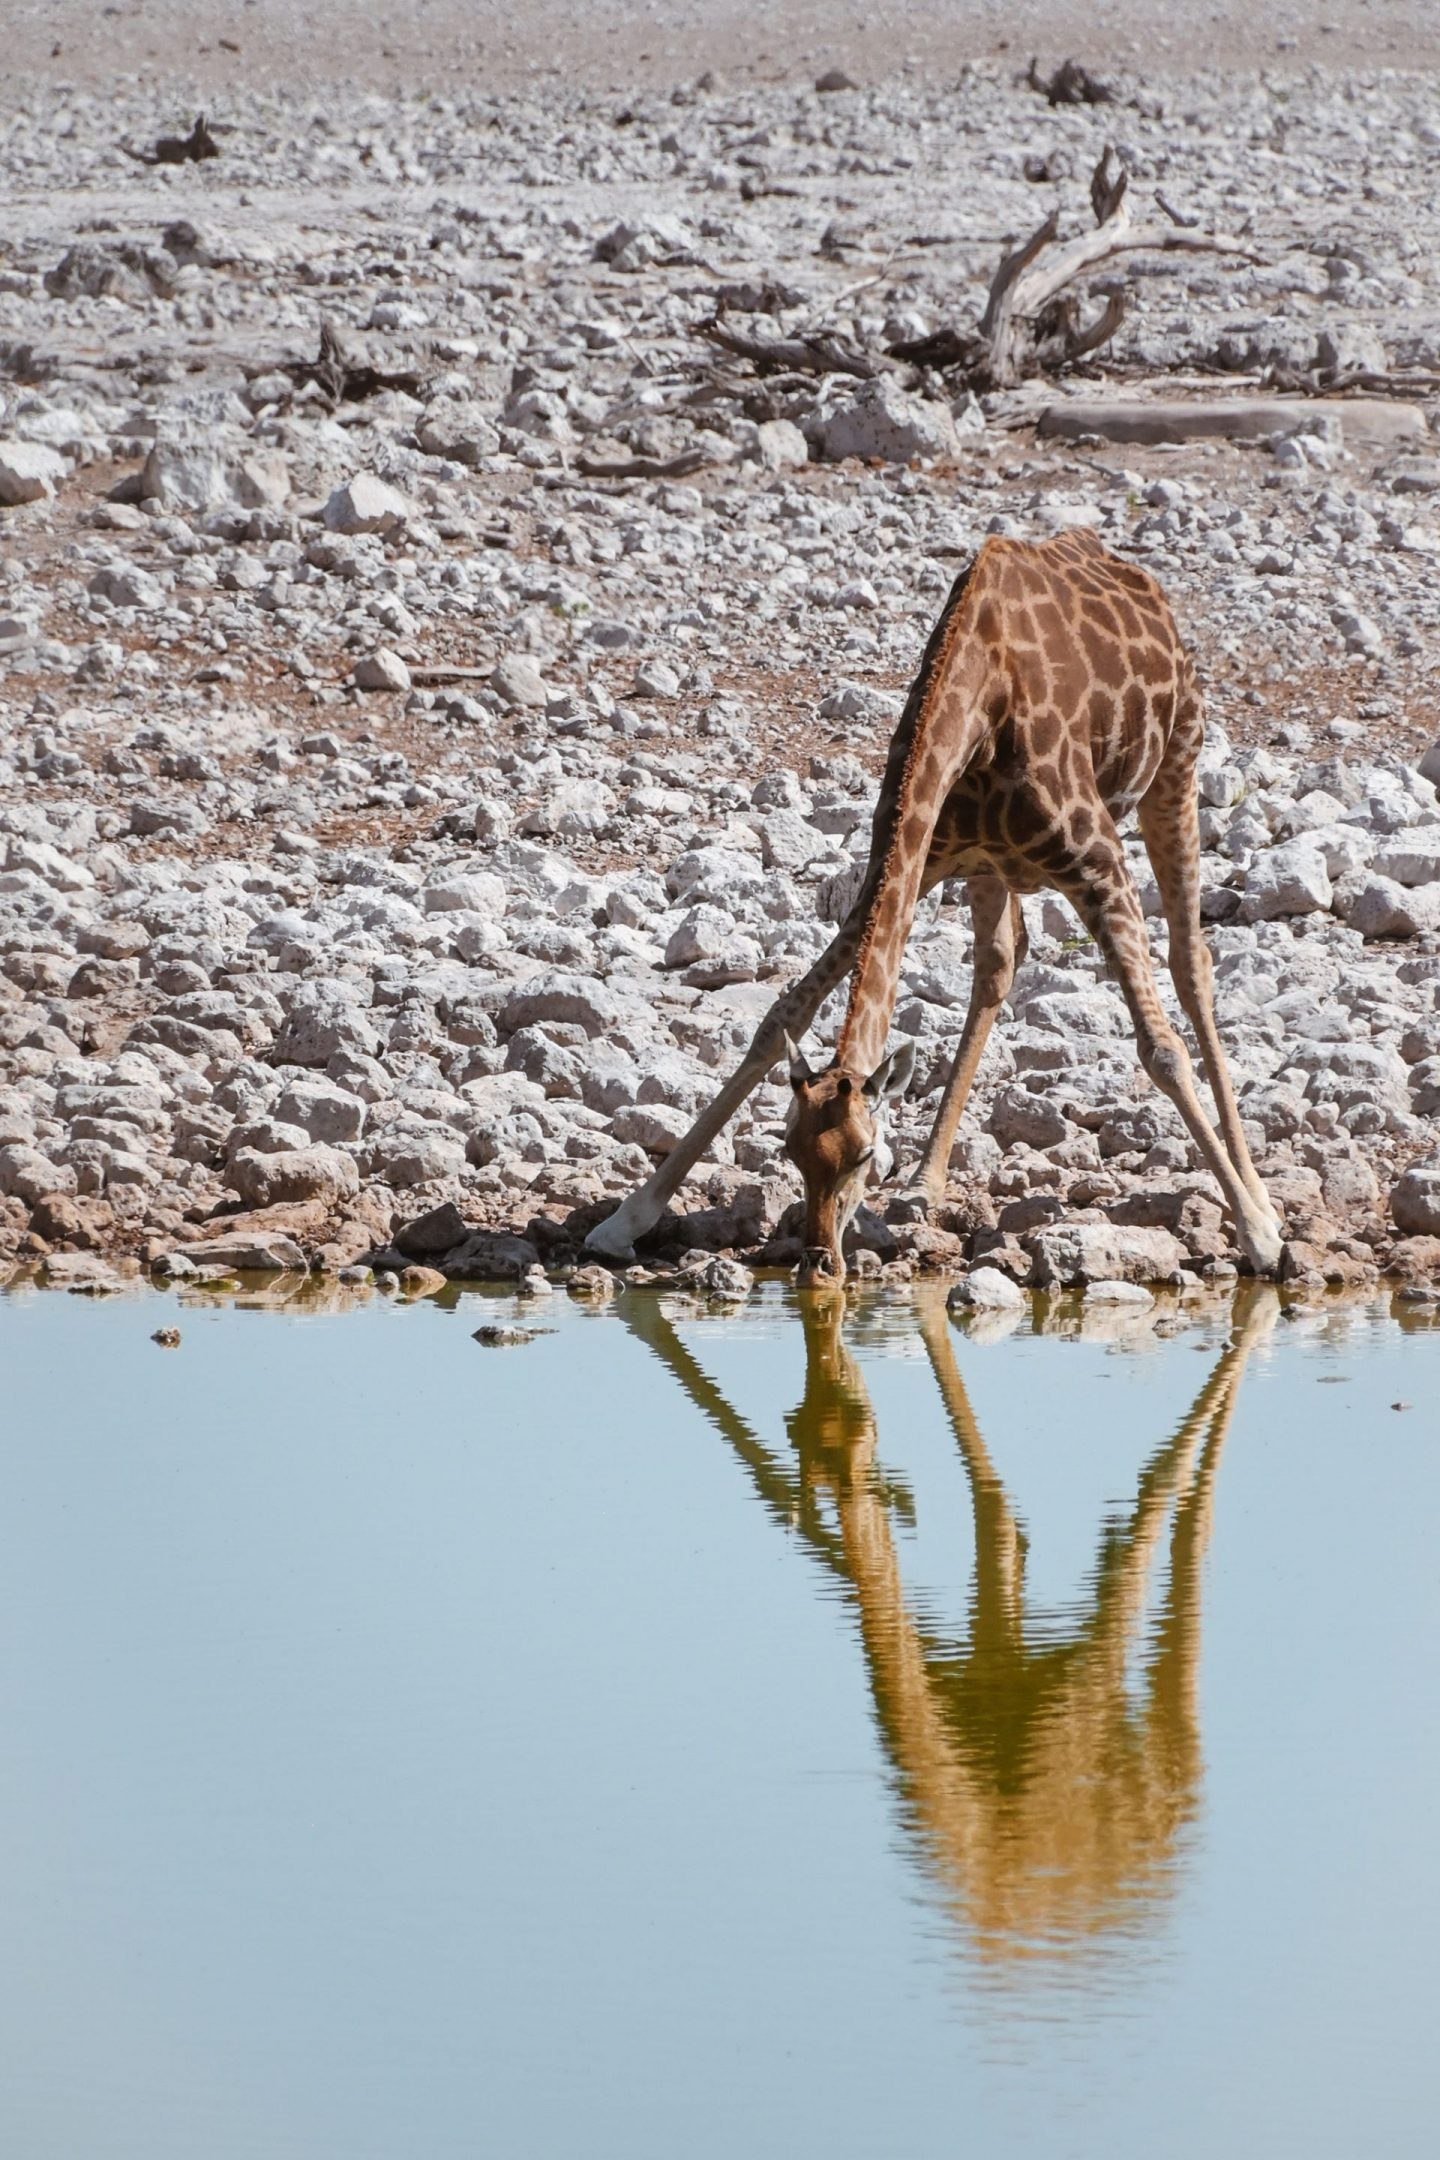 Giraffe drinking on Namibia self drive safari in Etosha National Park